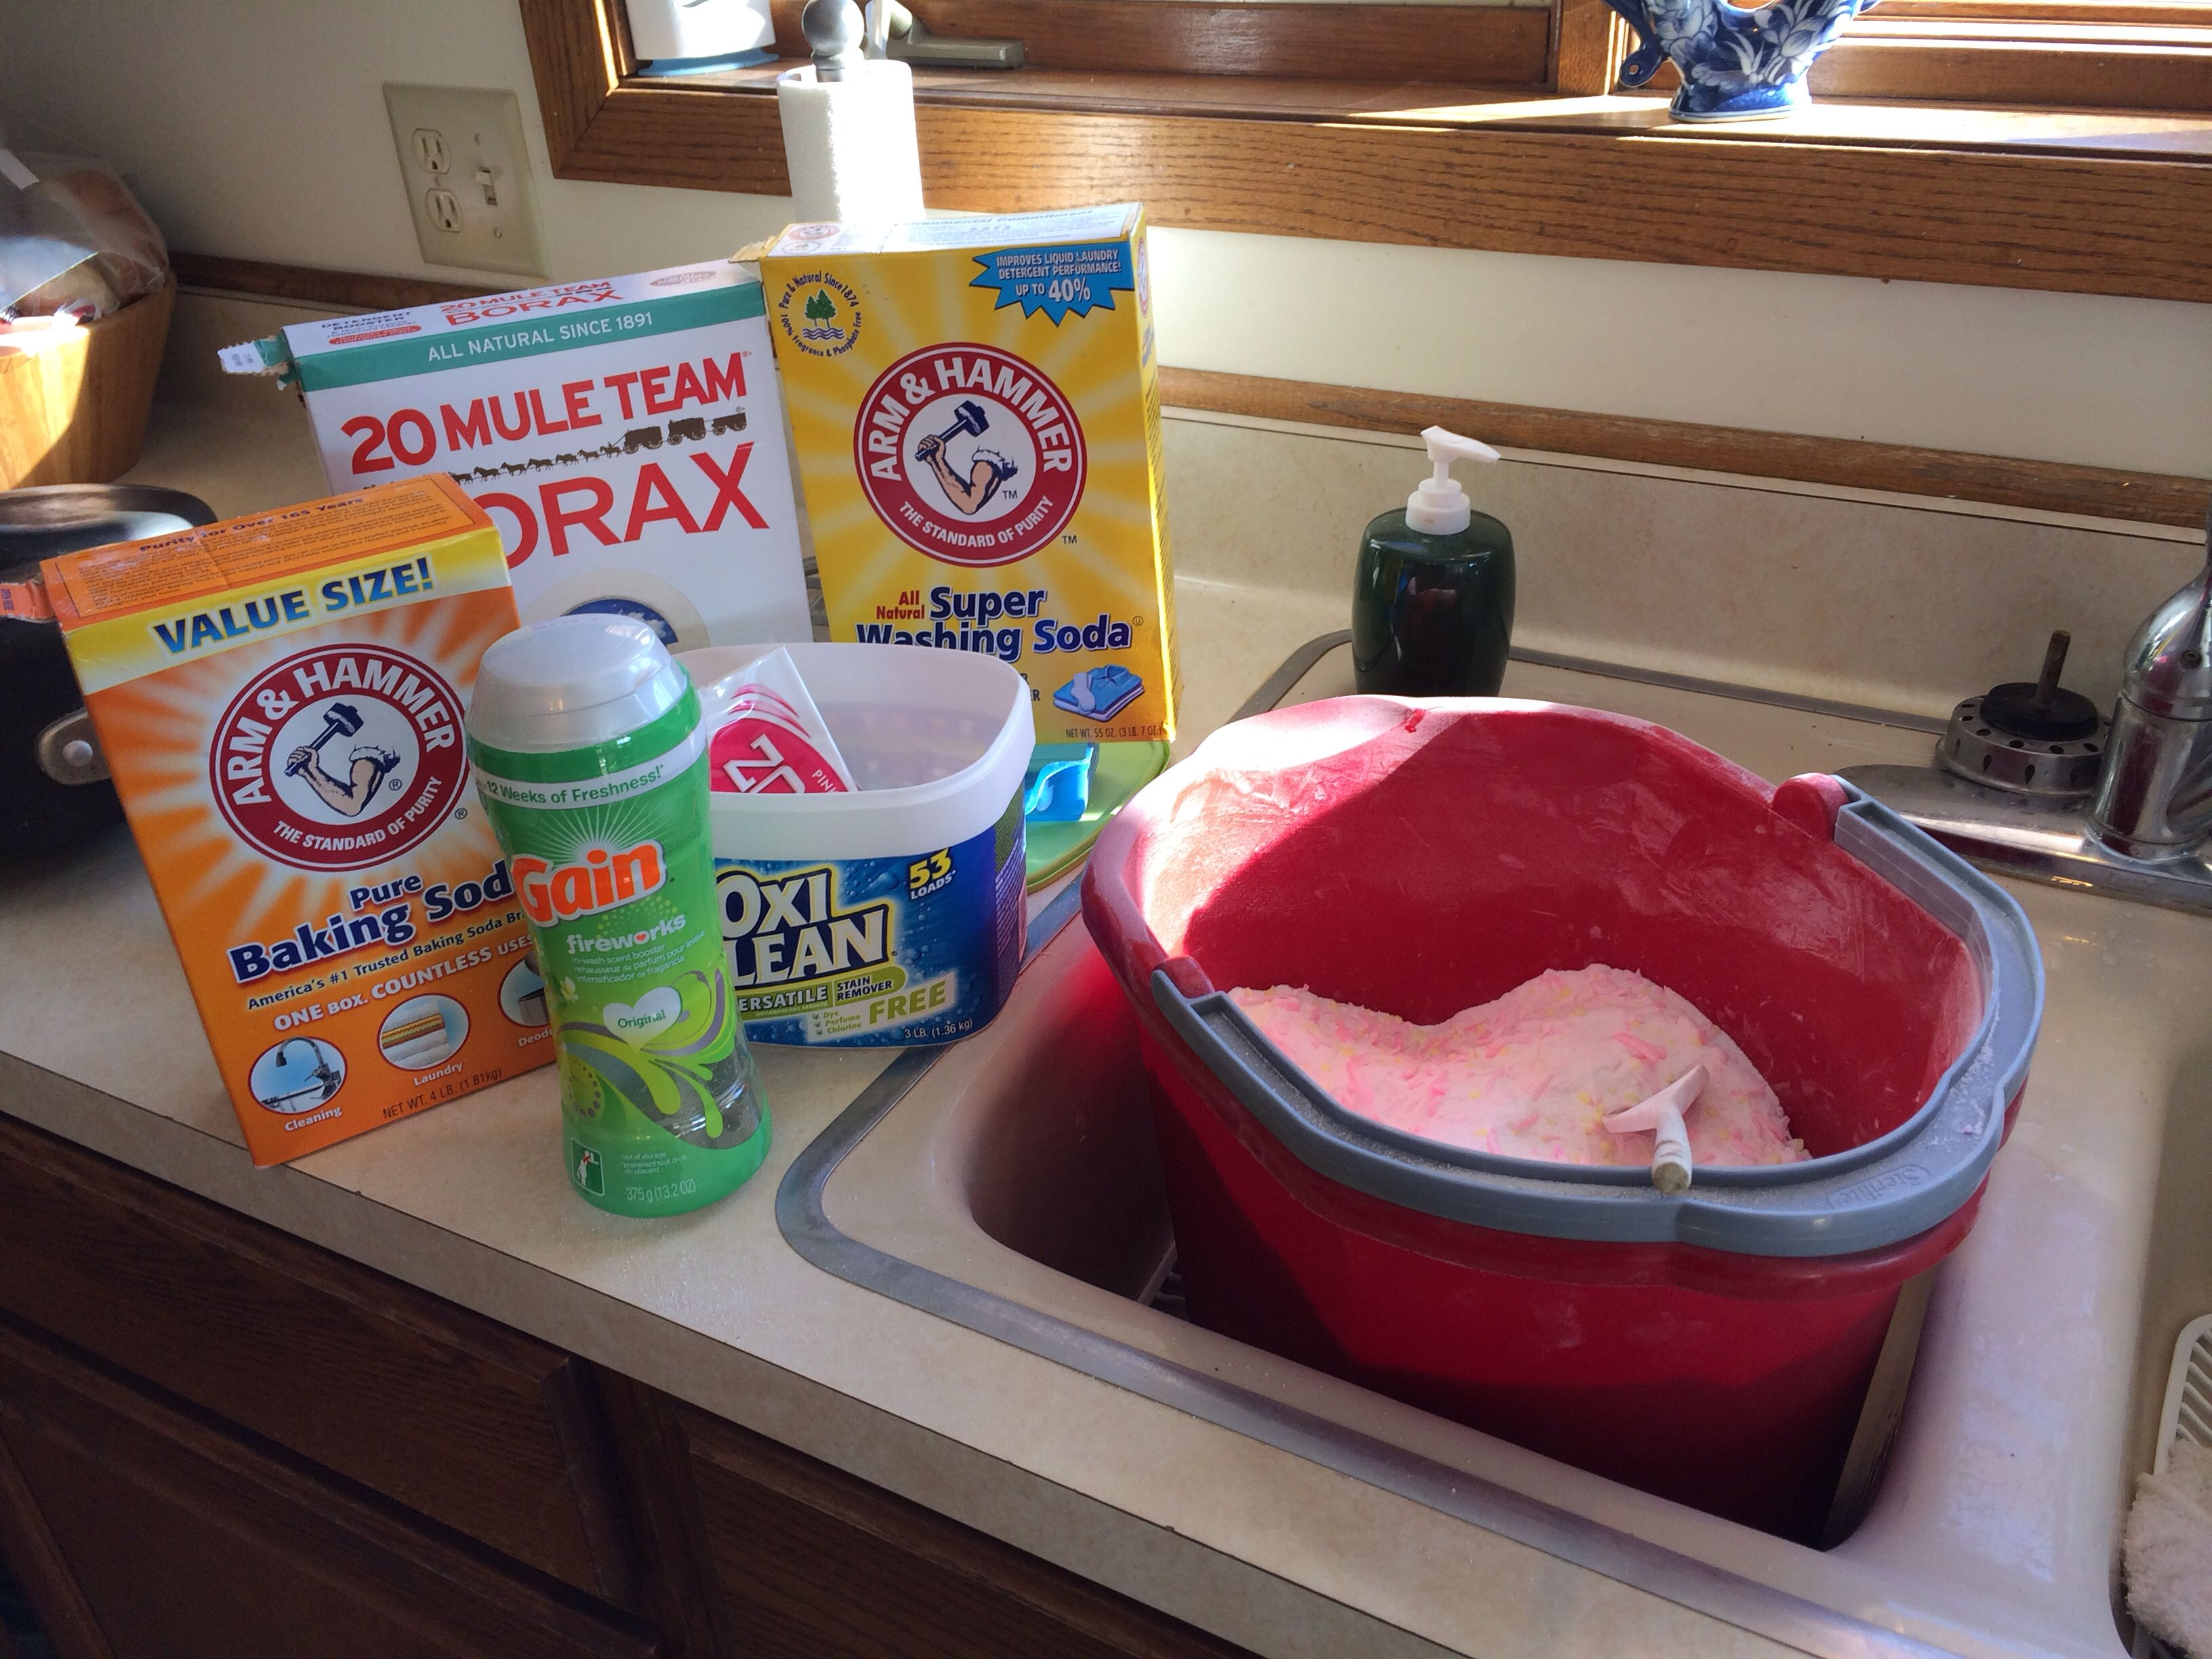 Is arm and hammer powder laundry detergent he - Homemade He Laundry Detergent Smells Awesome Works Great Costs Less